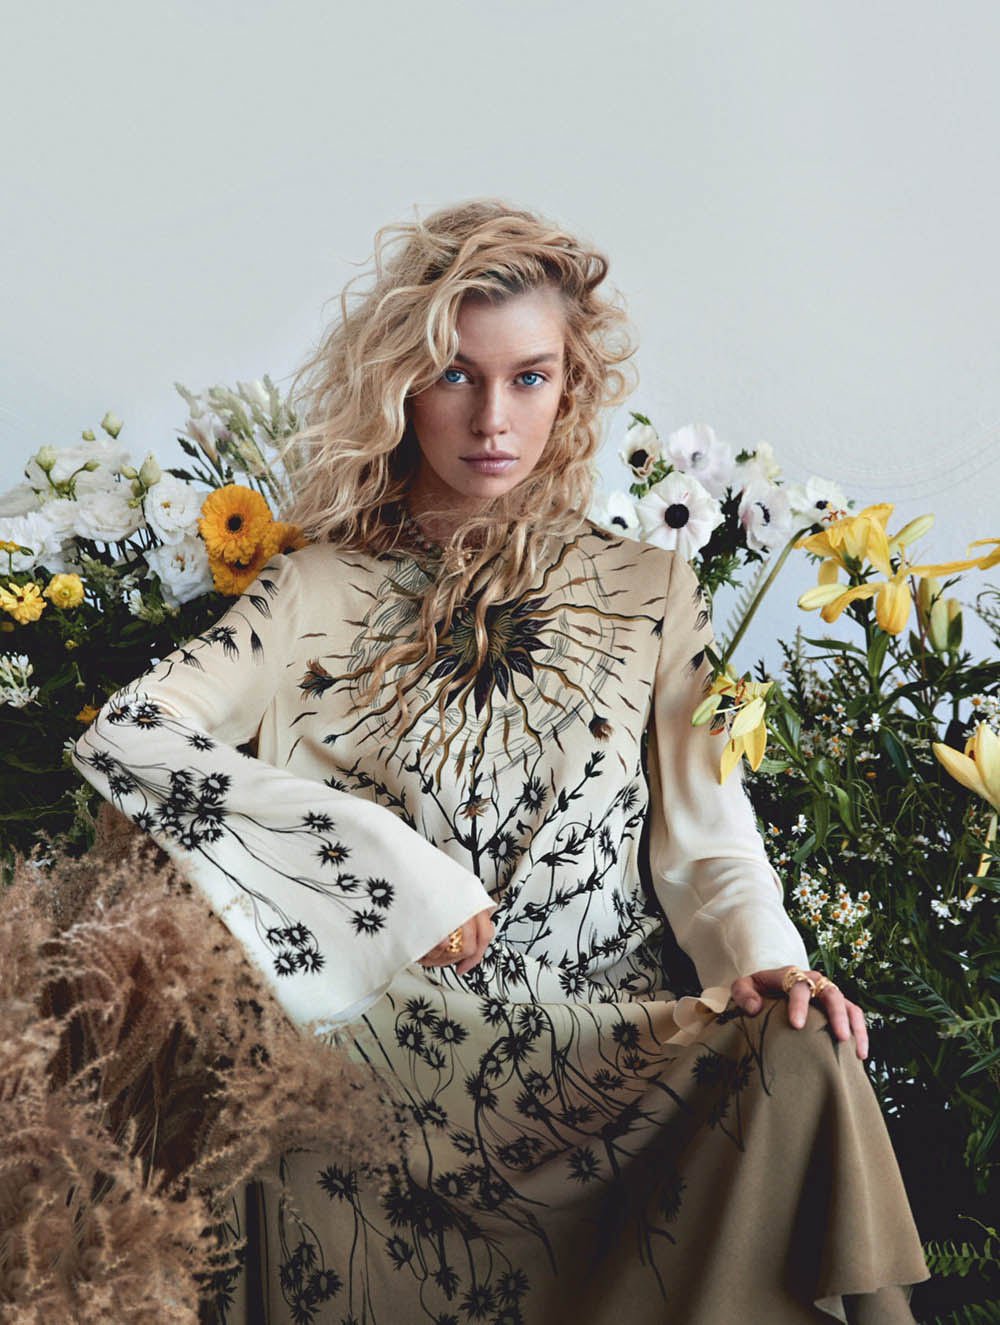 Stella Maxwell covers Marie Claire Italia March 2020 by David RoemerStella Maxwell covers Marie Claire Italia March 2020 by David RoemerStella Maxwell covers Marie Claire Italia March 2020 by David Roemer